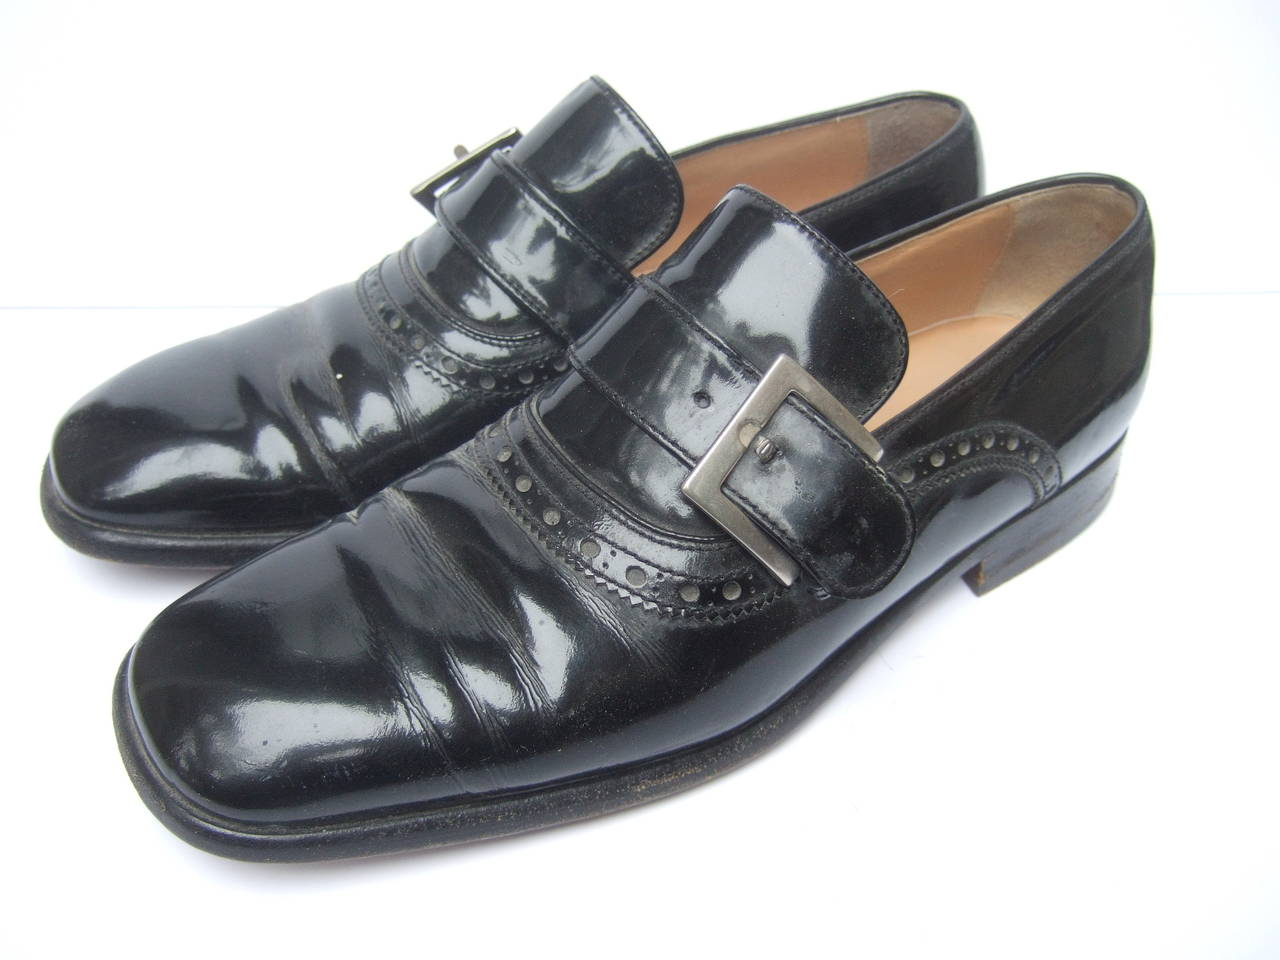 dolce and gabbana s black patent leather shoes us size